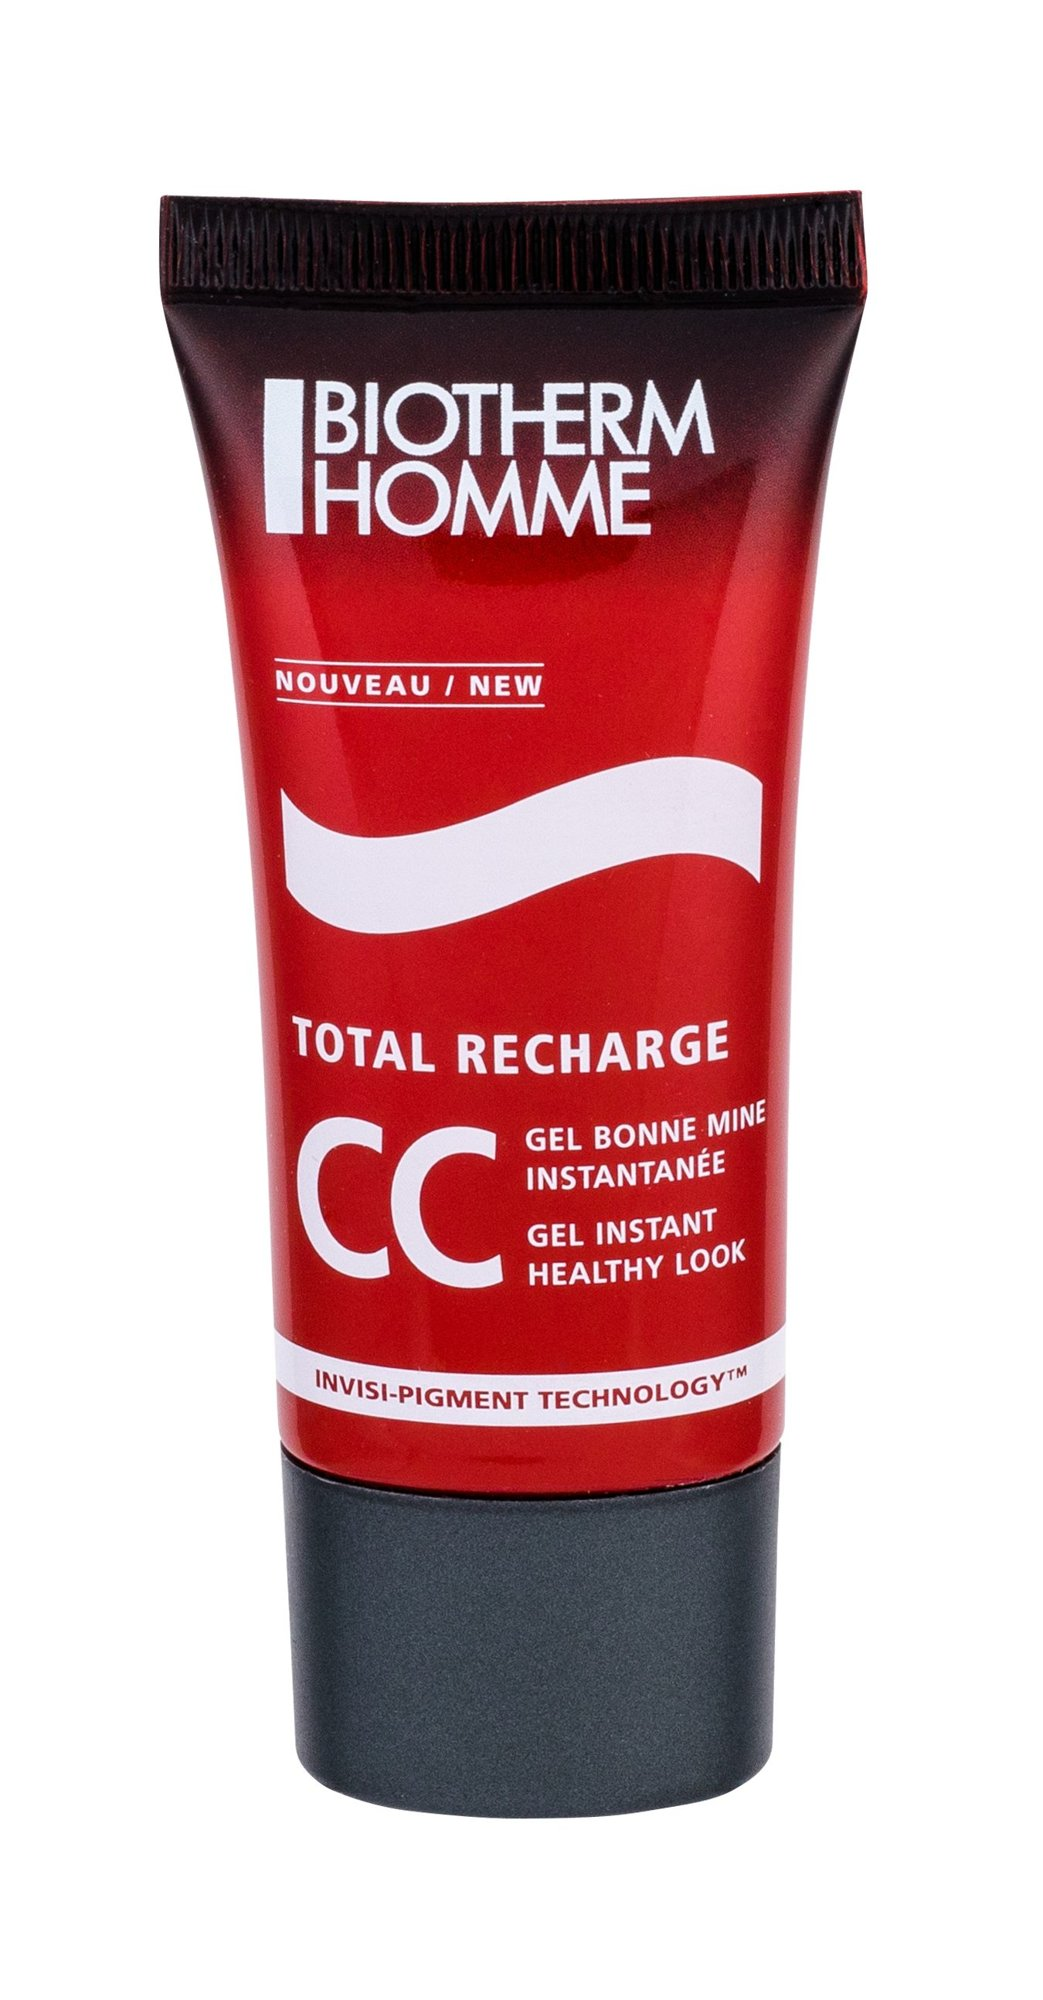 Biotherm Homme Total Recharge Cosmetic 30ml